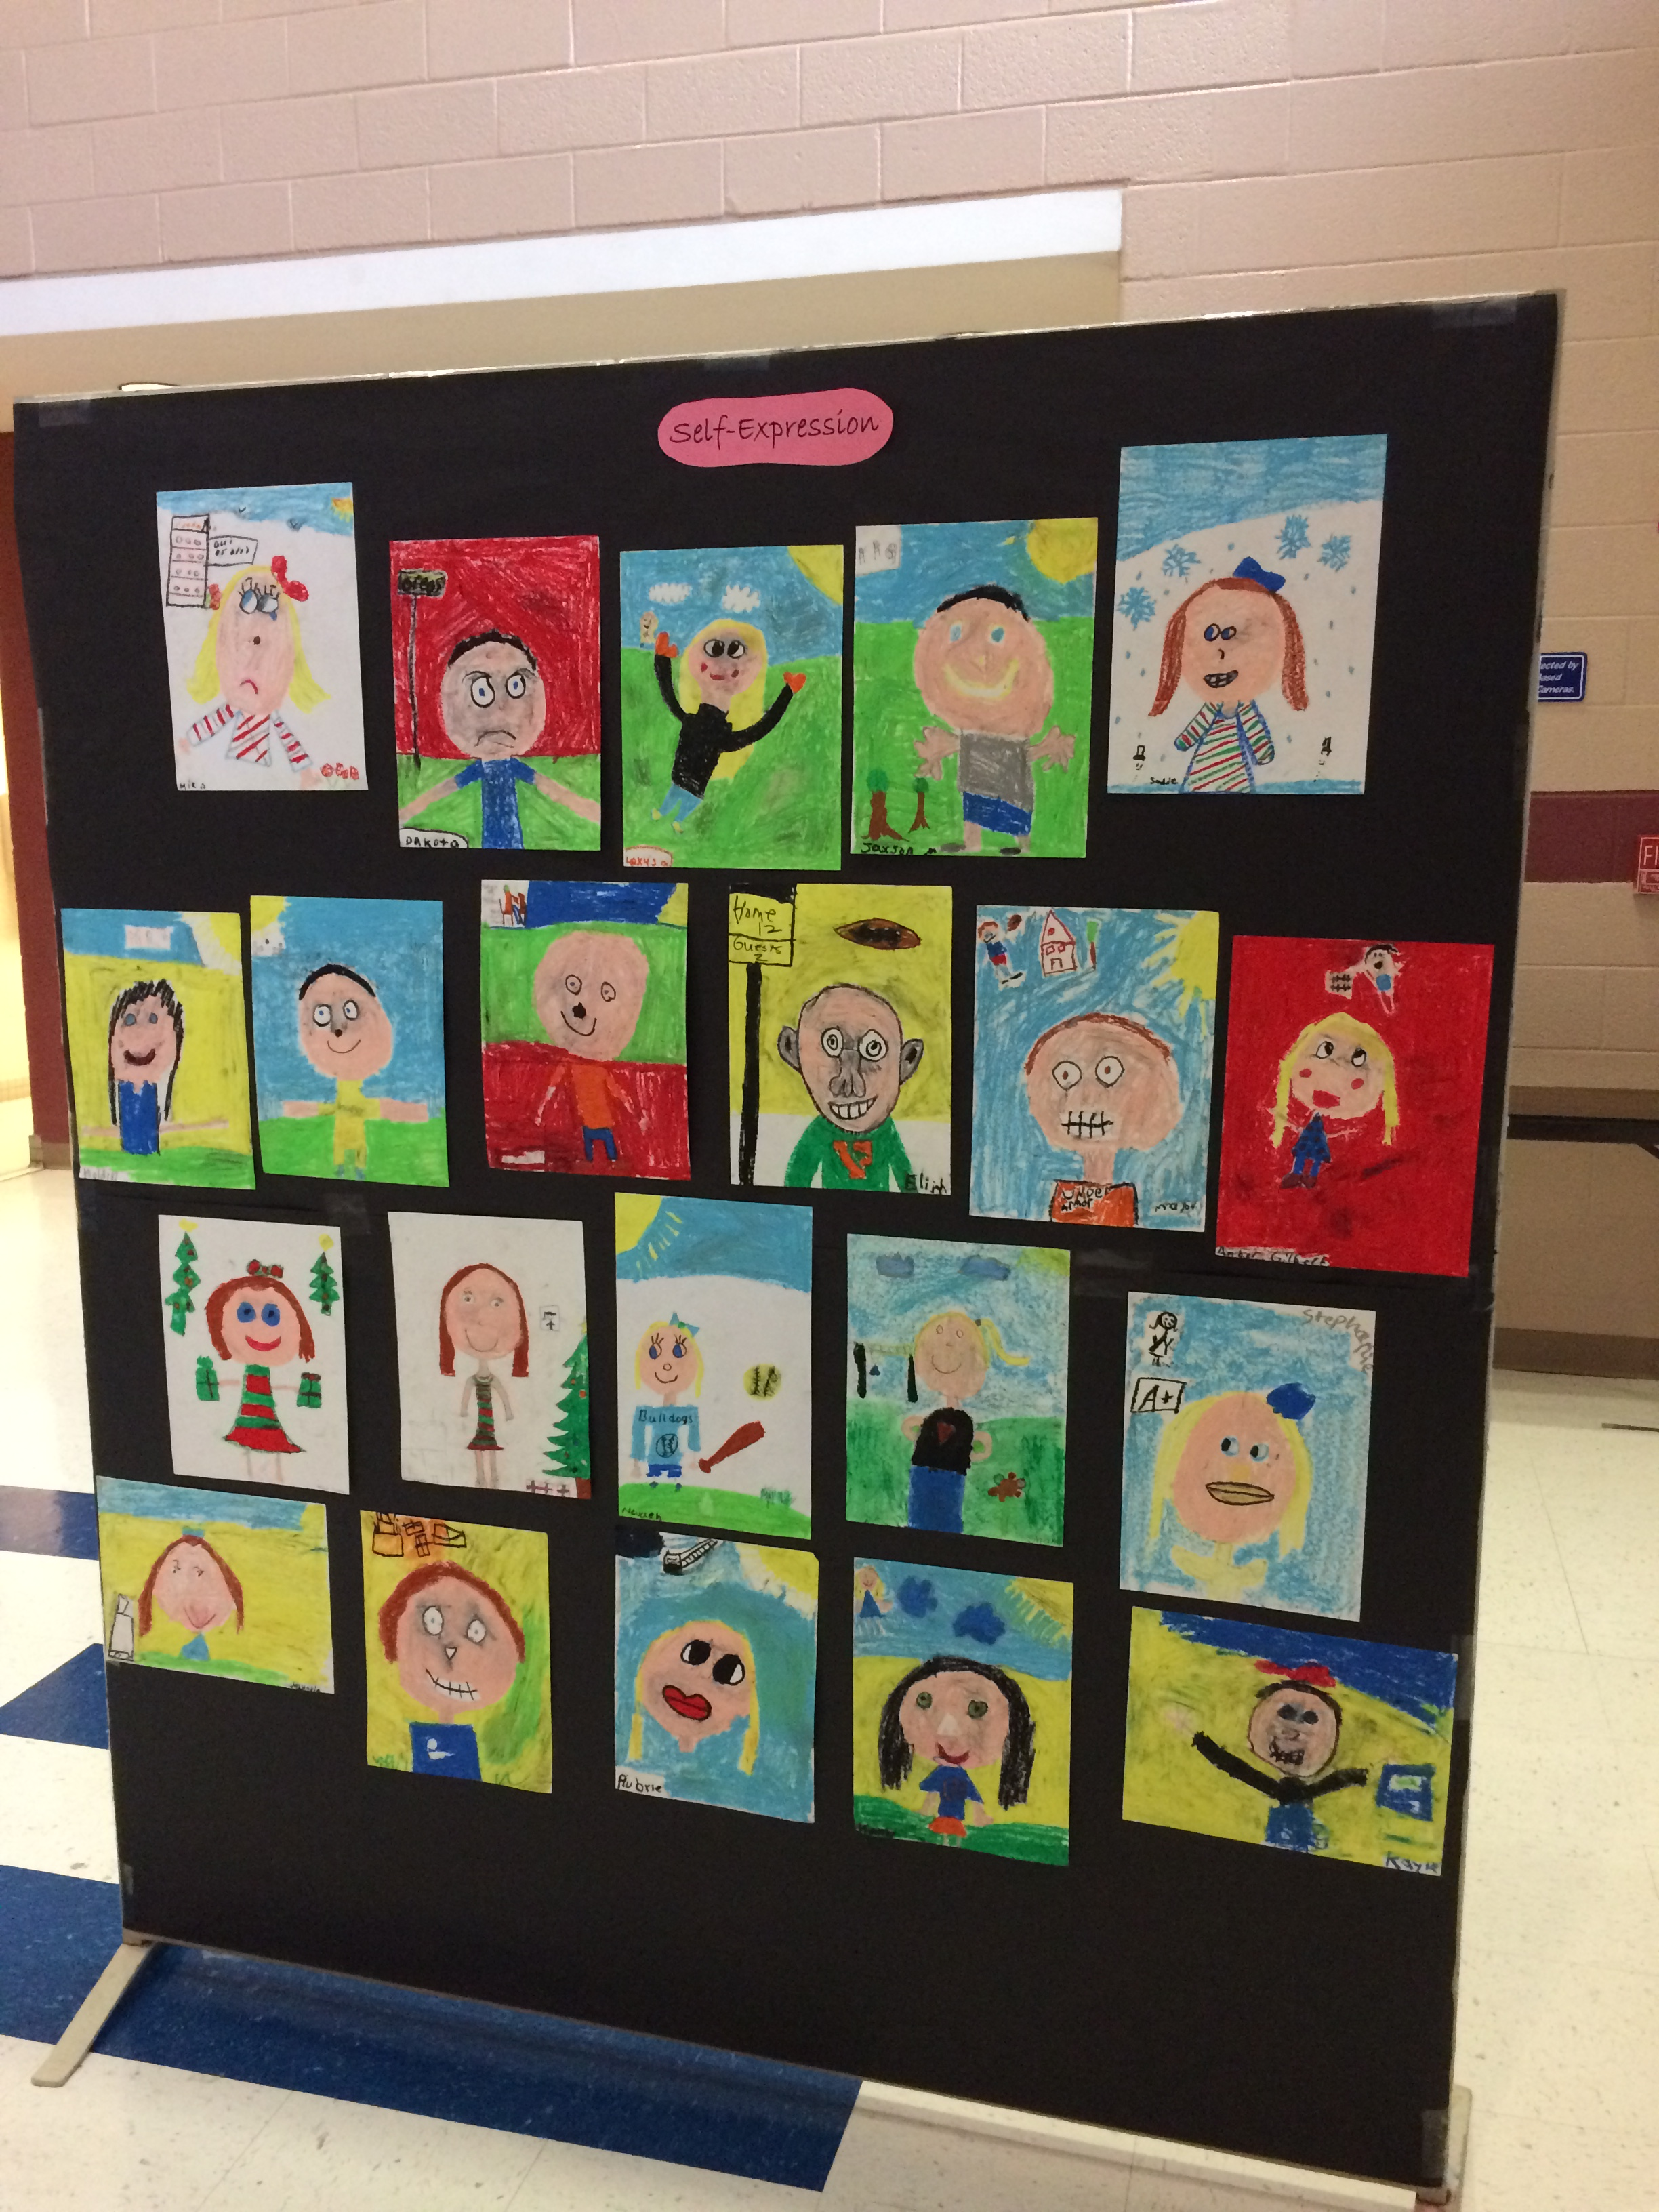 Artwork was displayed by the classes of Ms. Tammie Conner, Ms. Carolyn Brown, Ms. Kim Dicken, & Mr. Adam Davidson.